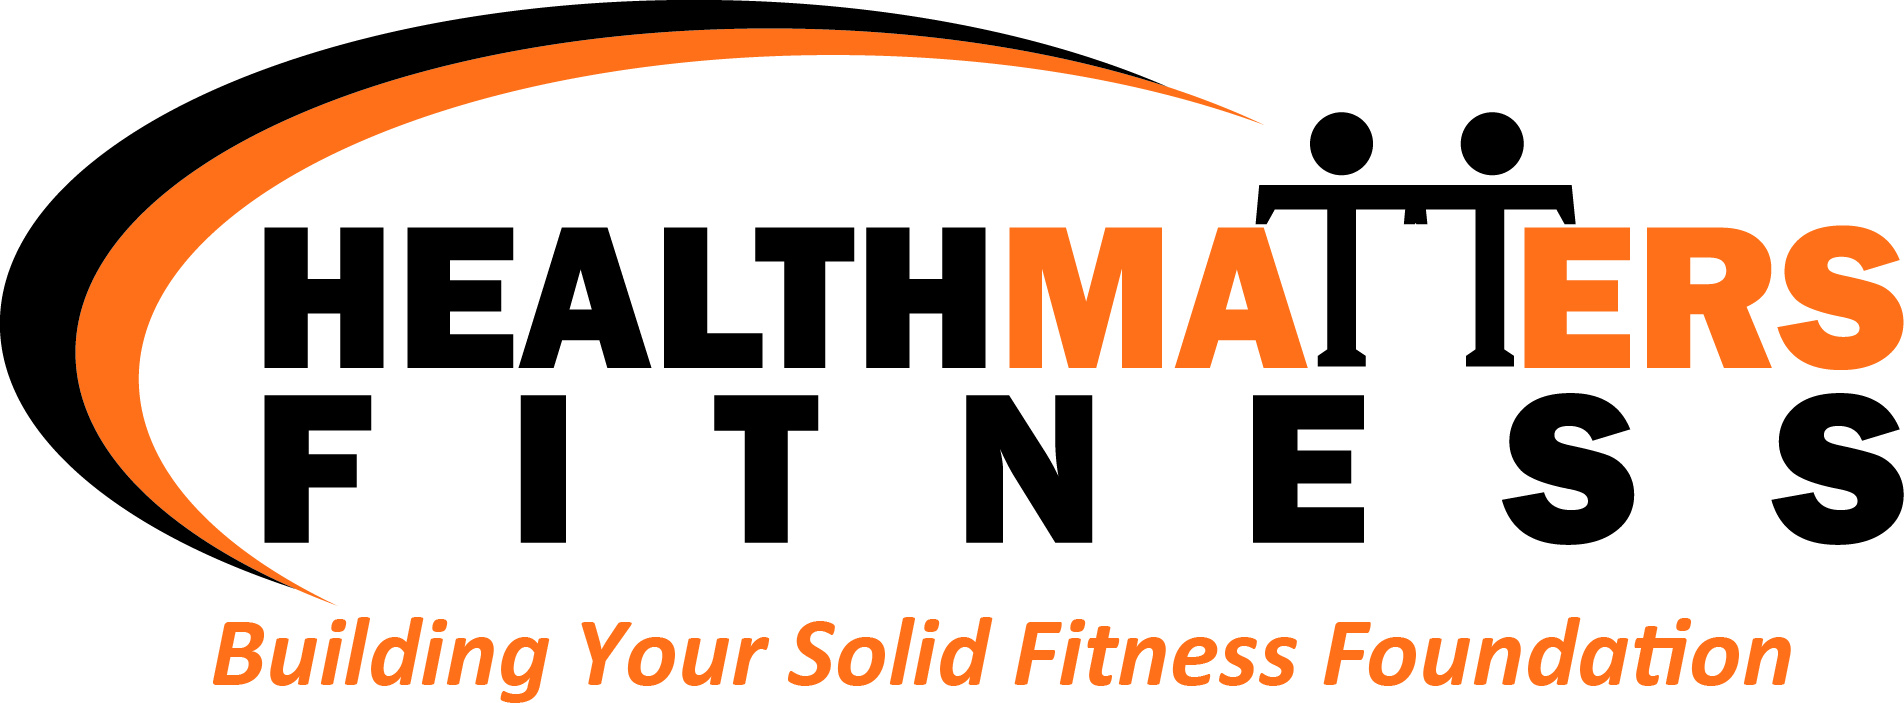 Building Your Solid Fitness Foundation